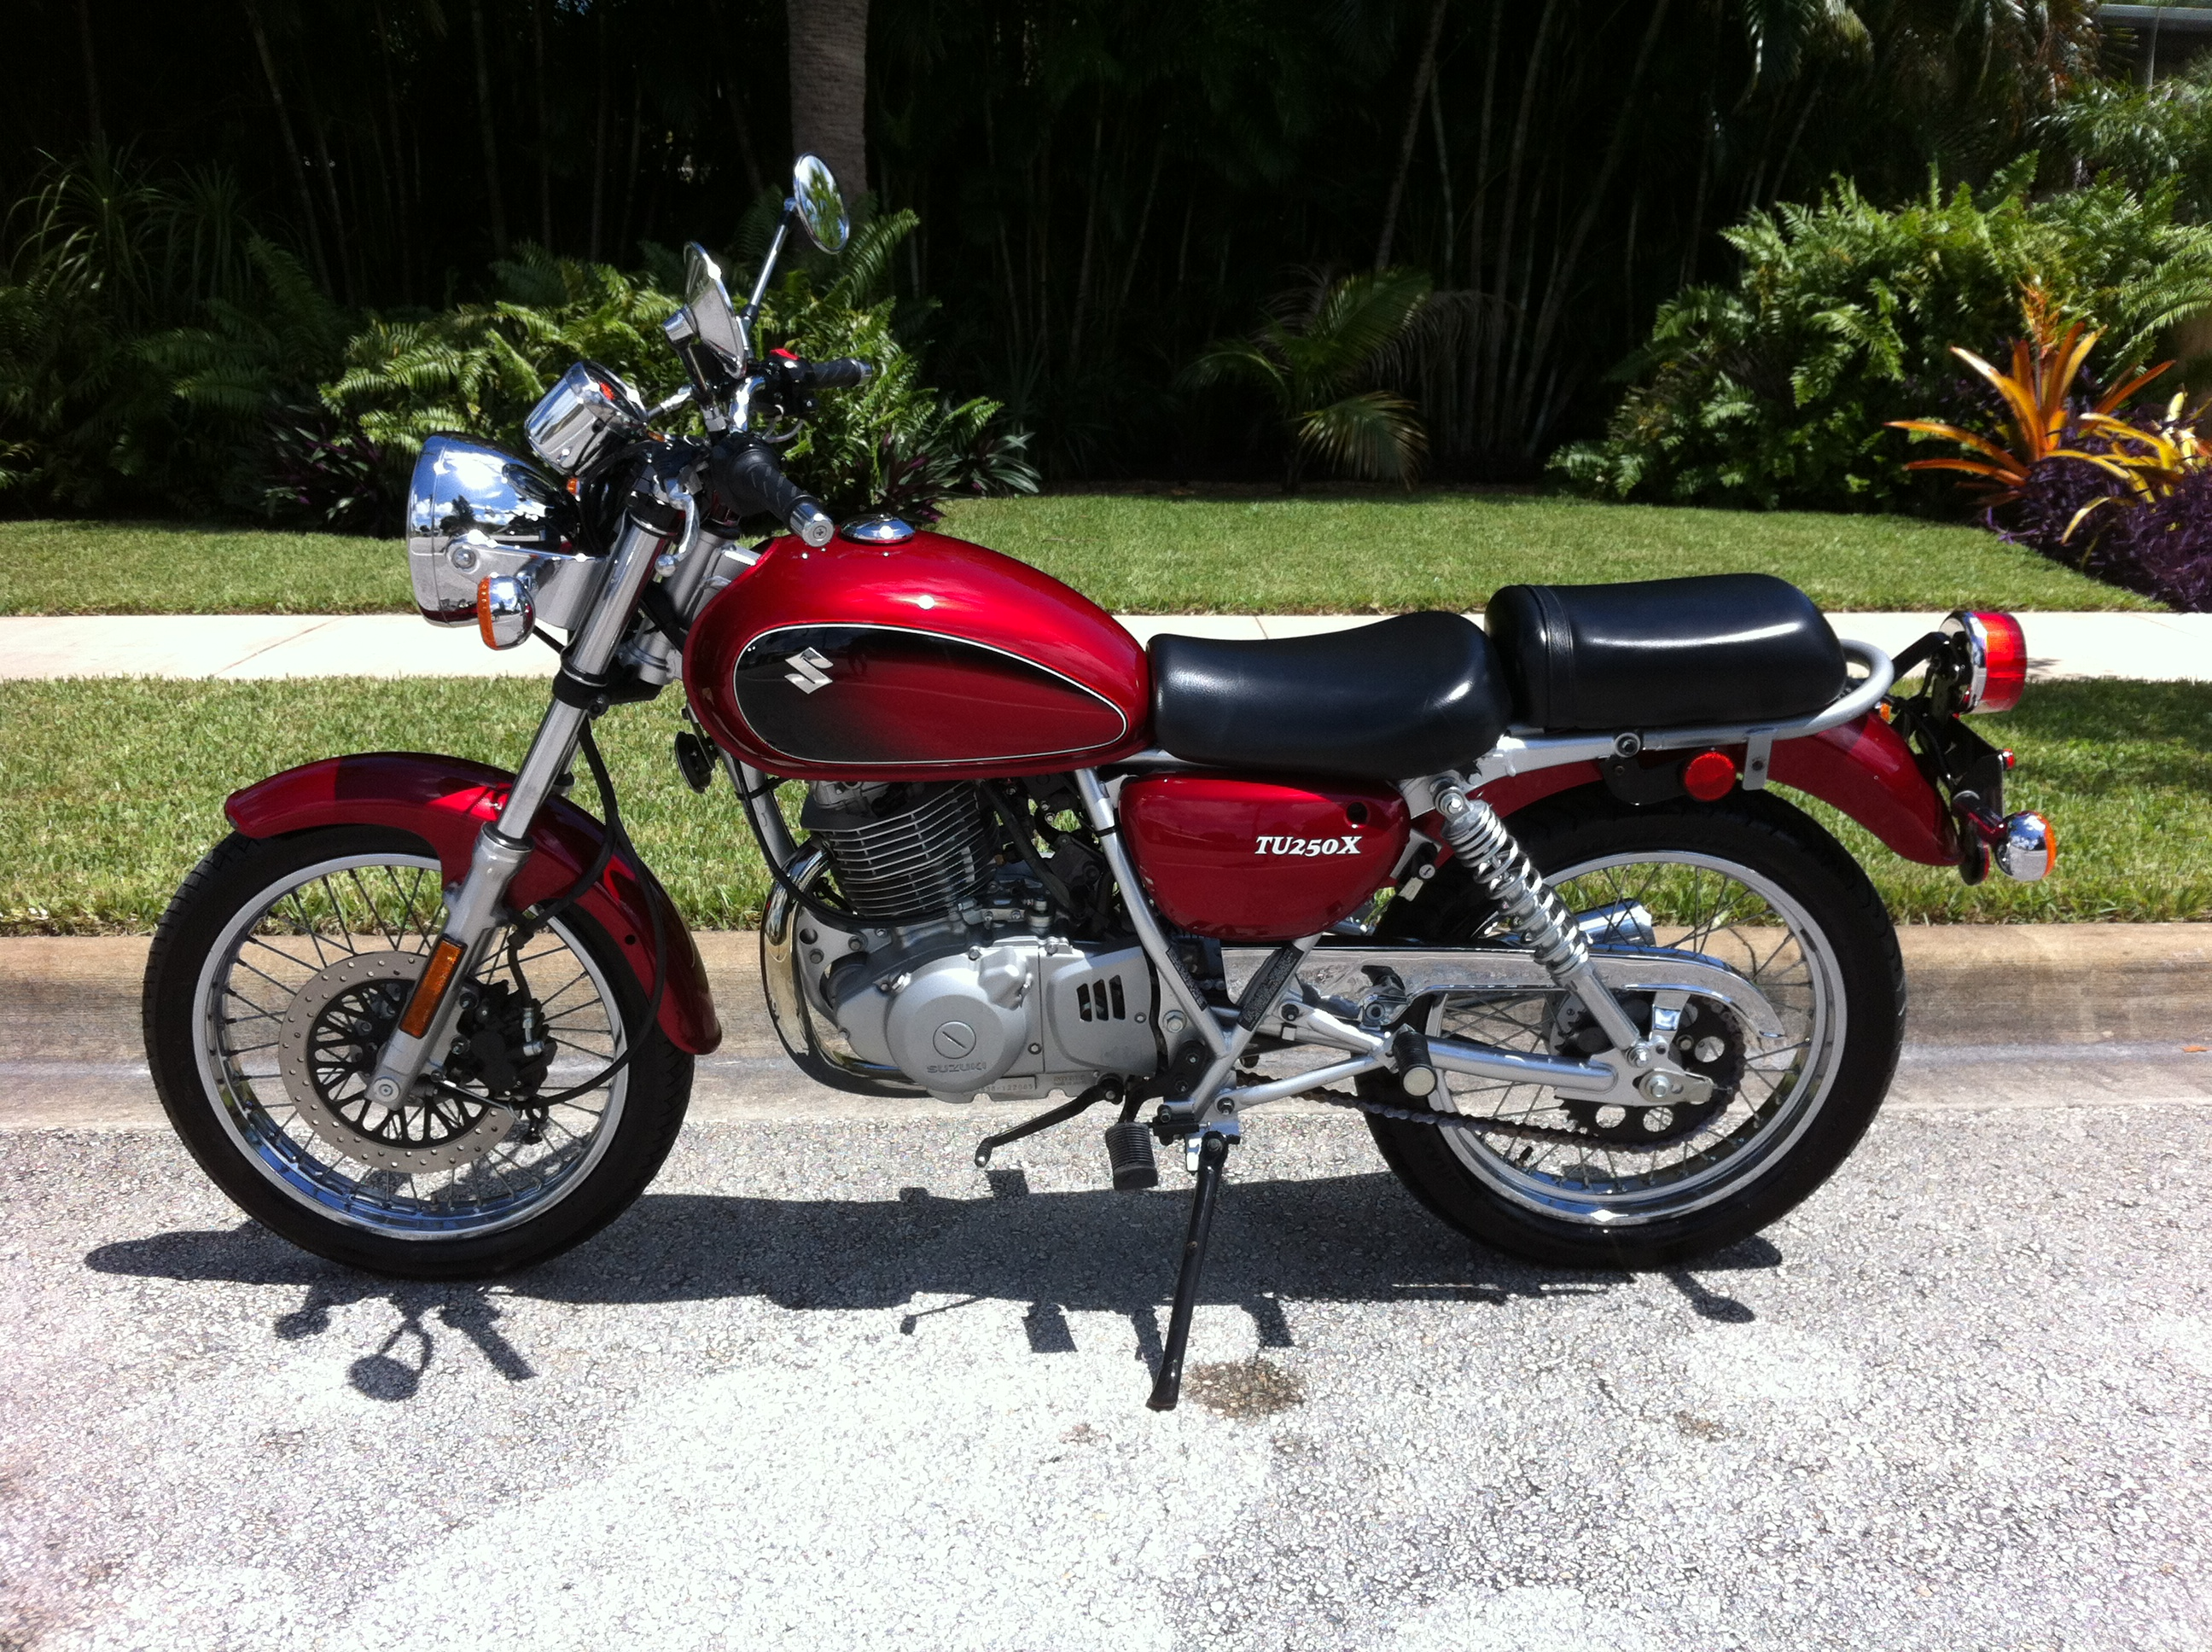 Sell Your Motorcycle in Florida